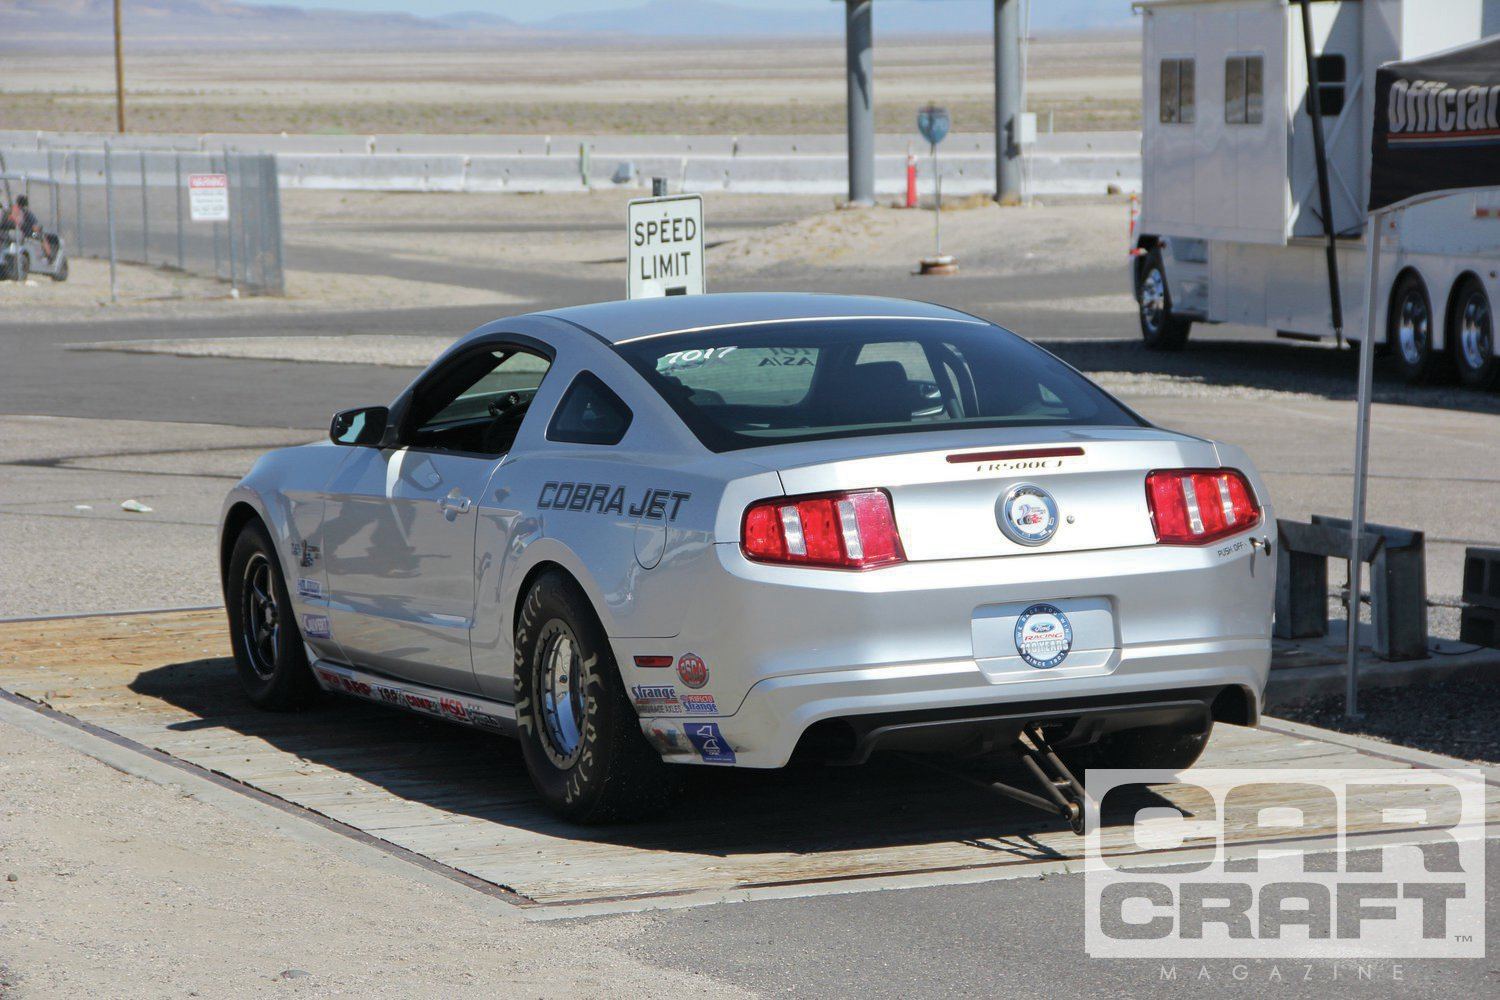 2010 Ford Mustang Cobra Jet photo - 1